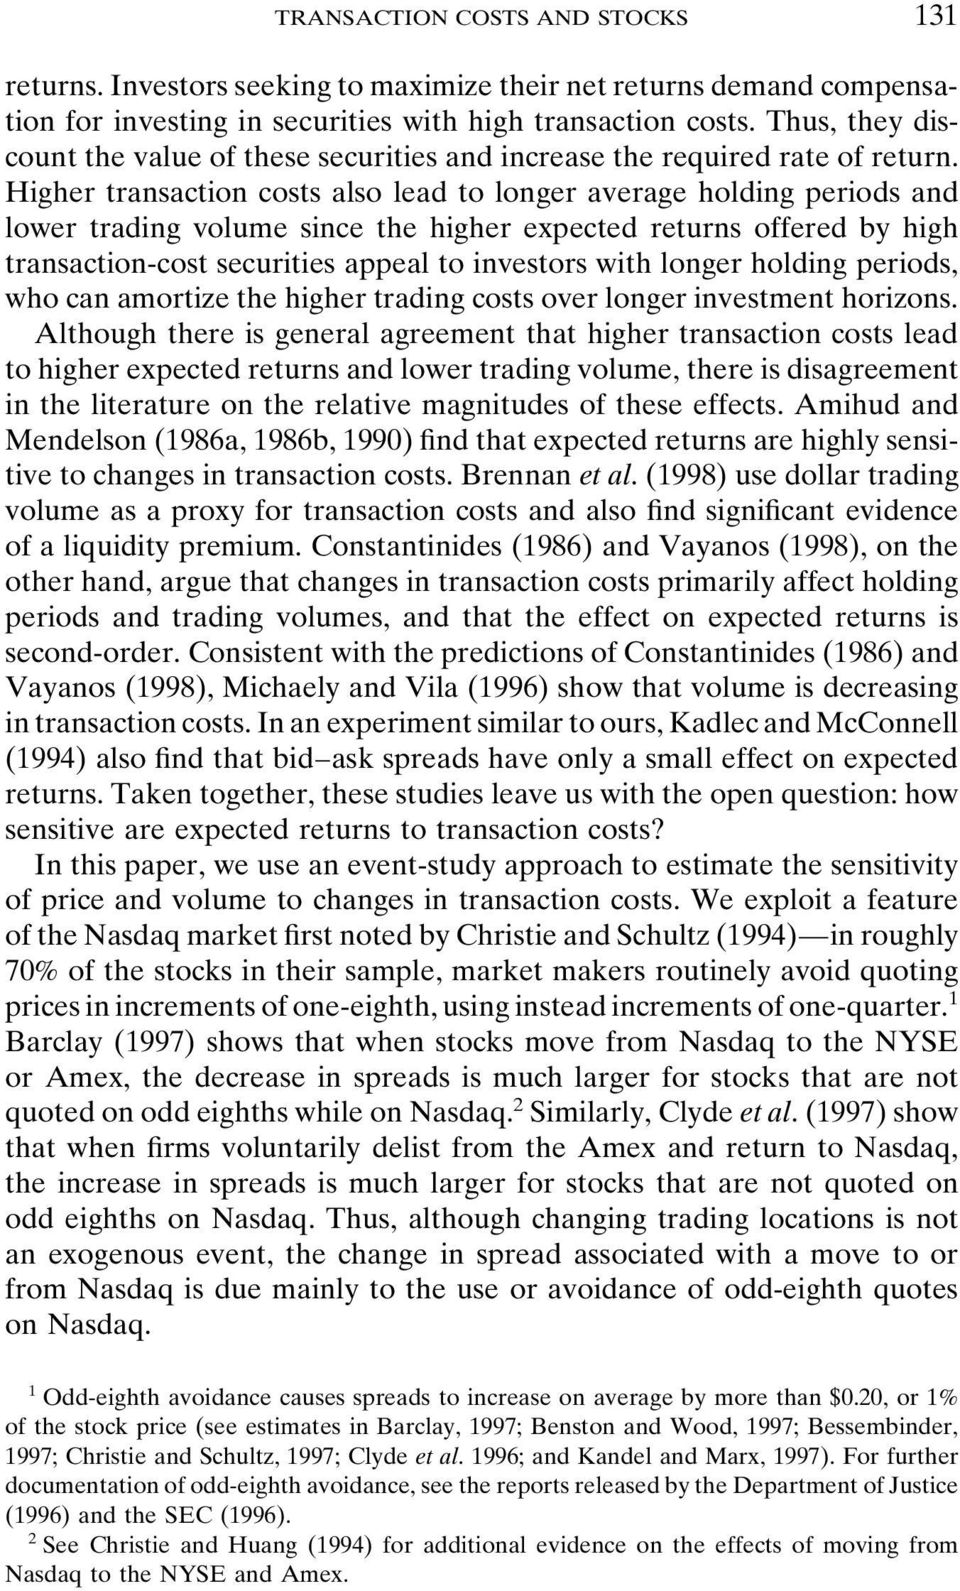 Higher transaction costs also lead to longer average holding periods and lower trading volume since the higher expected returns offered by high transaction-cost securities appeal to investors with